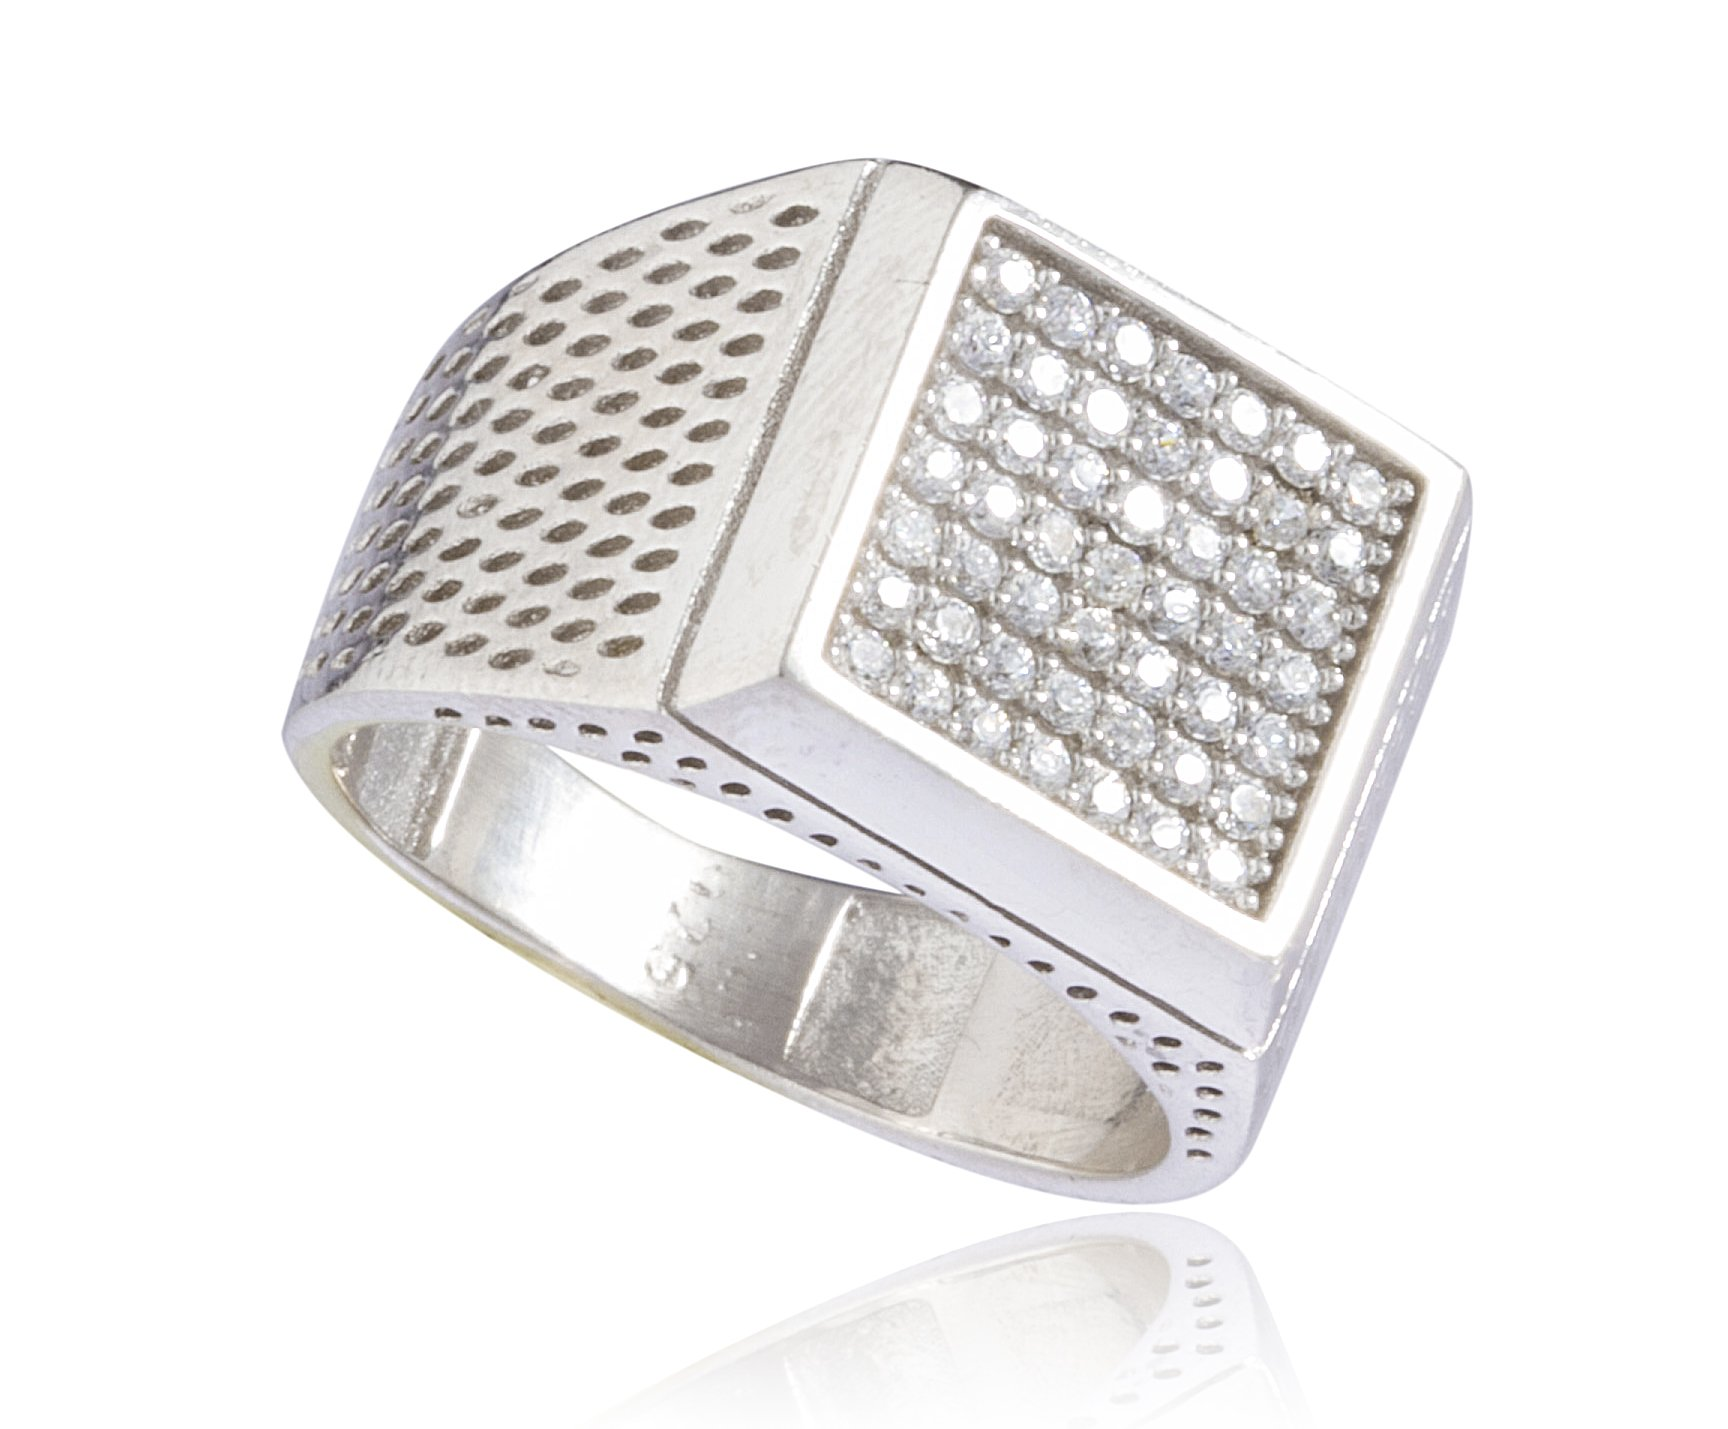 Real 925 Sterling Silver Iced Out Square Ring (10)